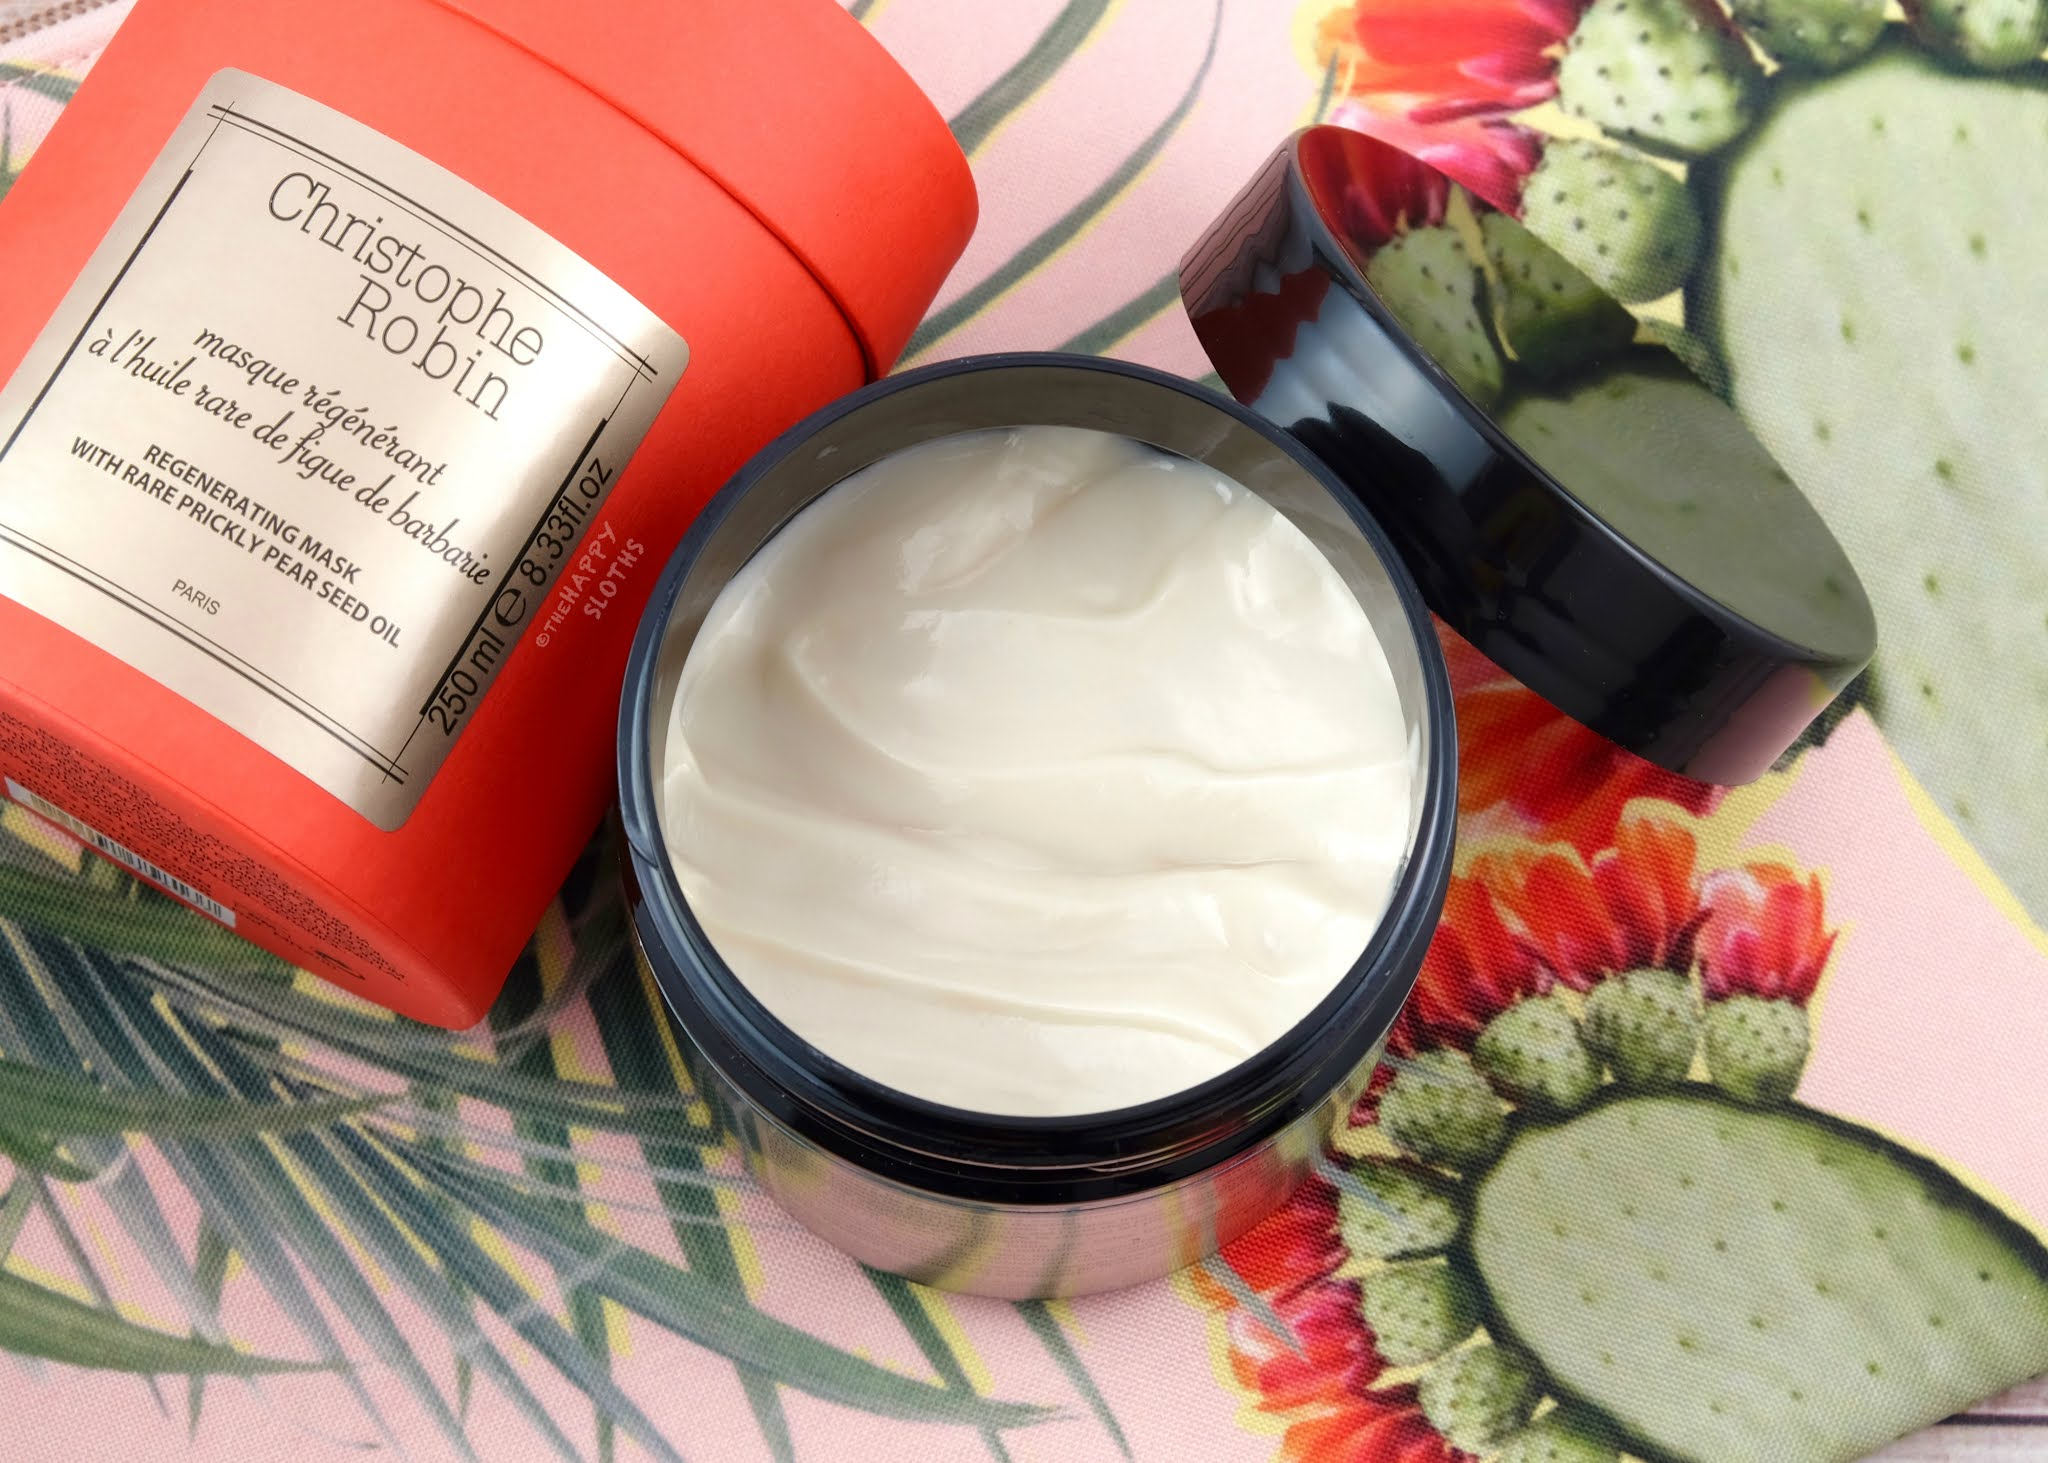 Christophe Robin | Regenerating Hair Mask with Prickly Pear Seed Oil: Review